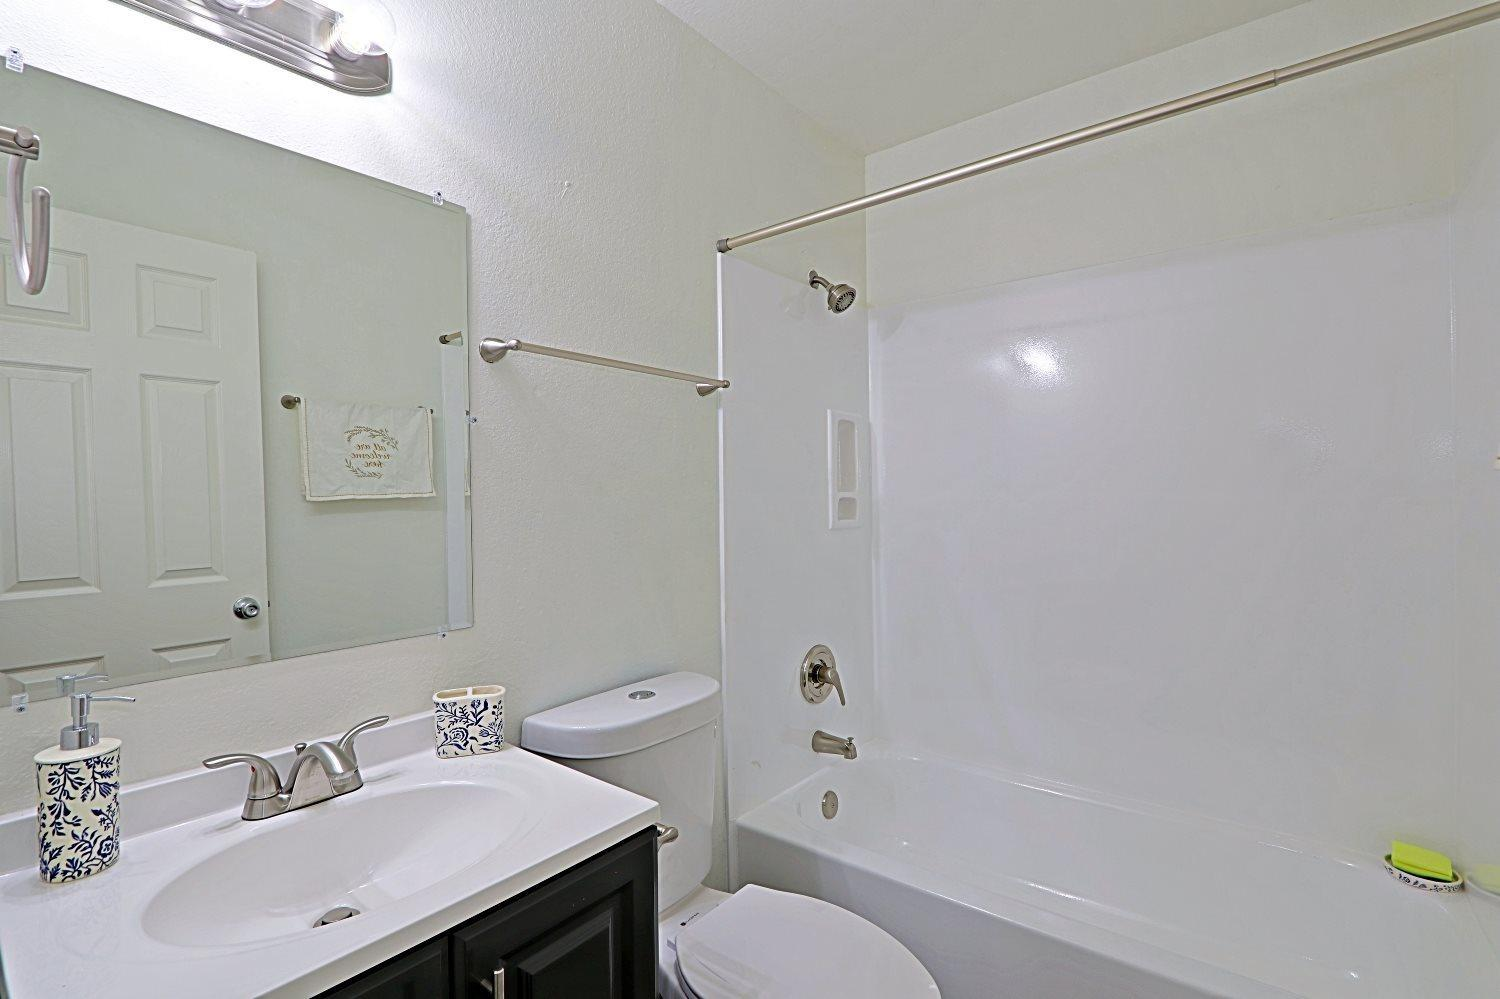 1312 Hardy Dr #13 - 1175USD / month